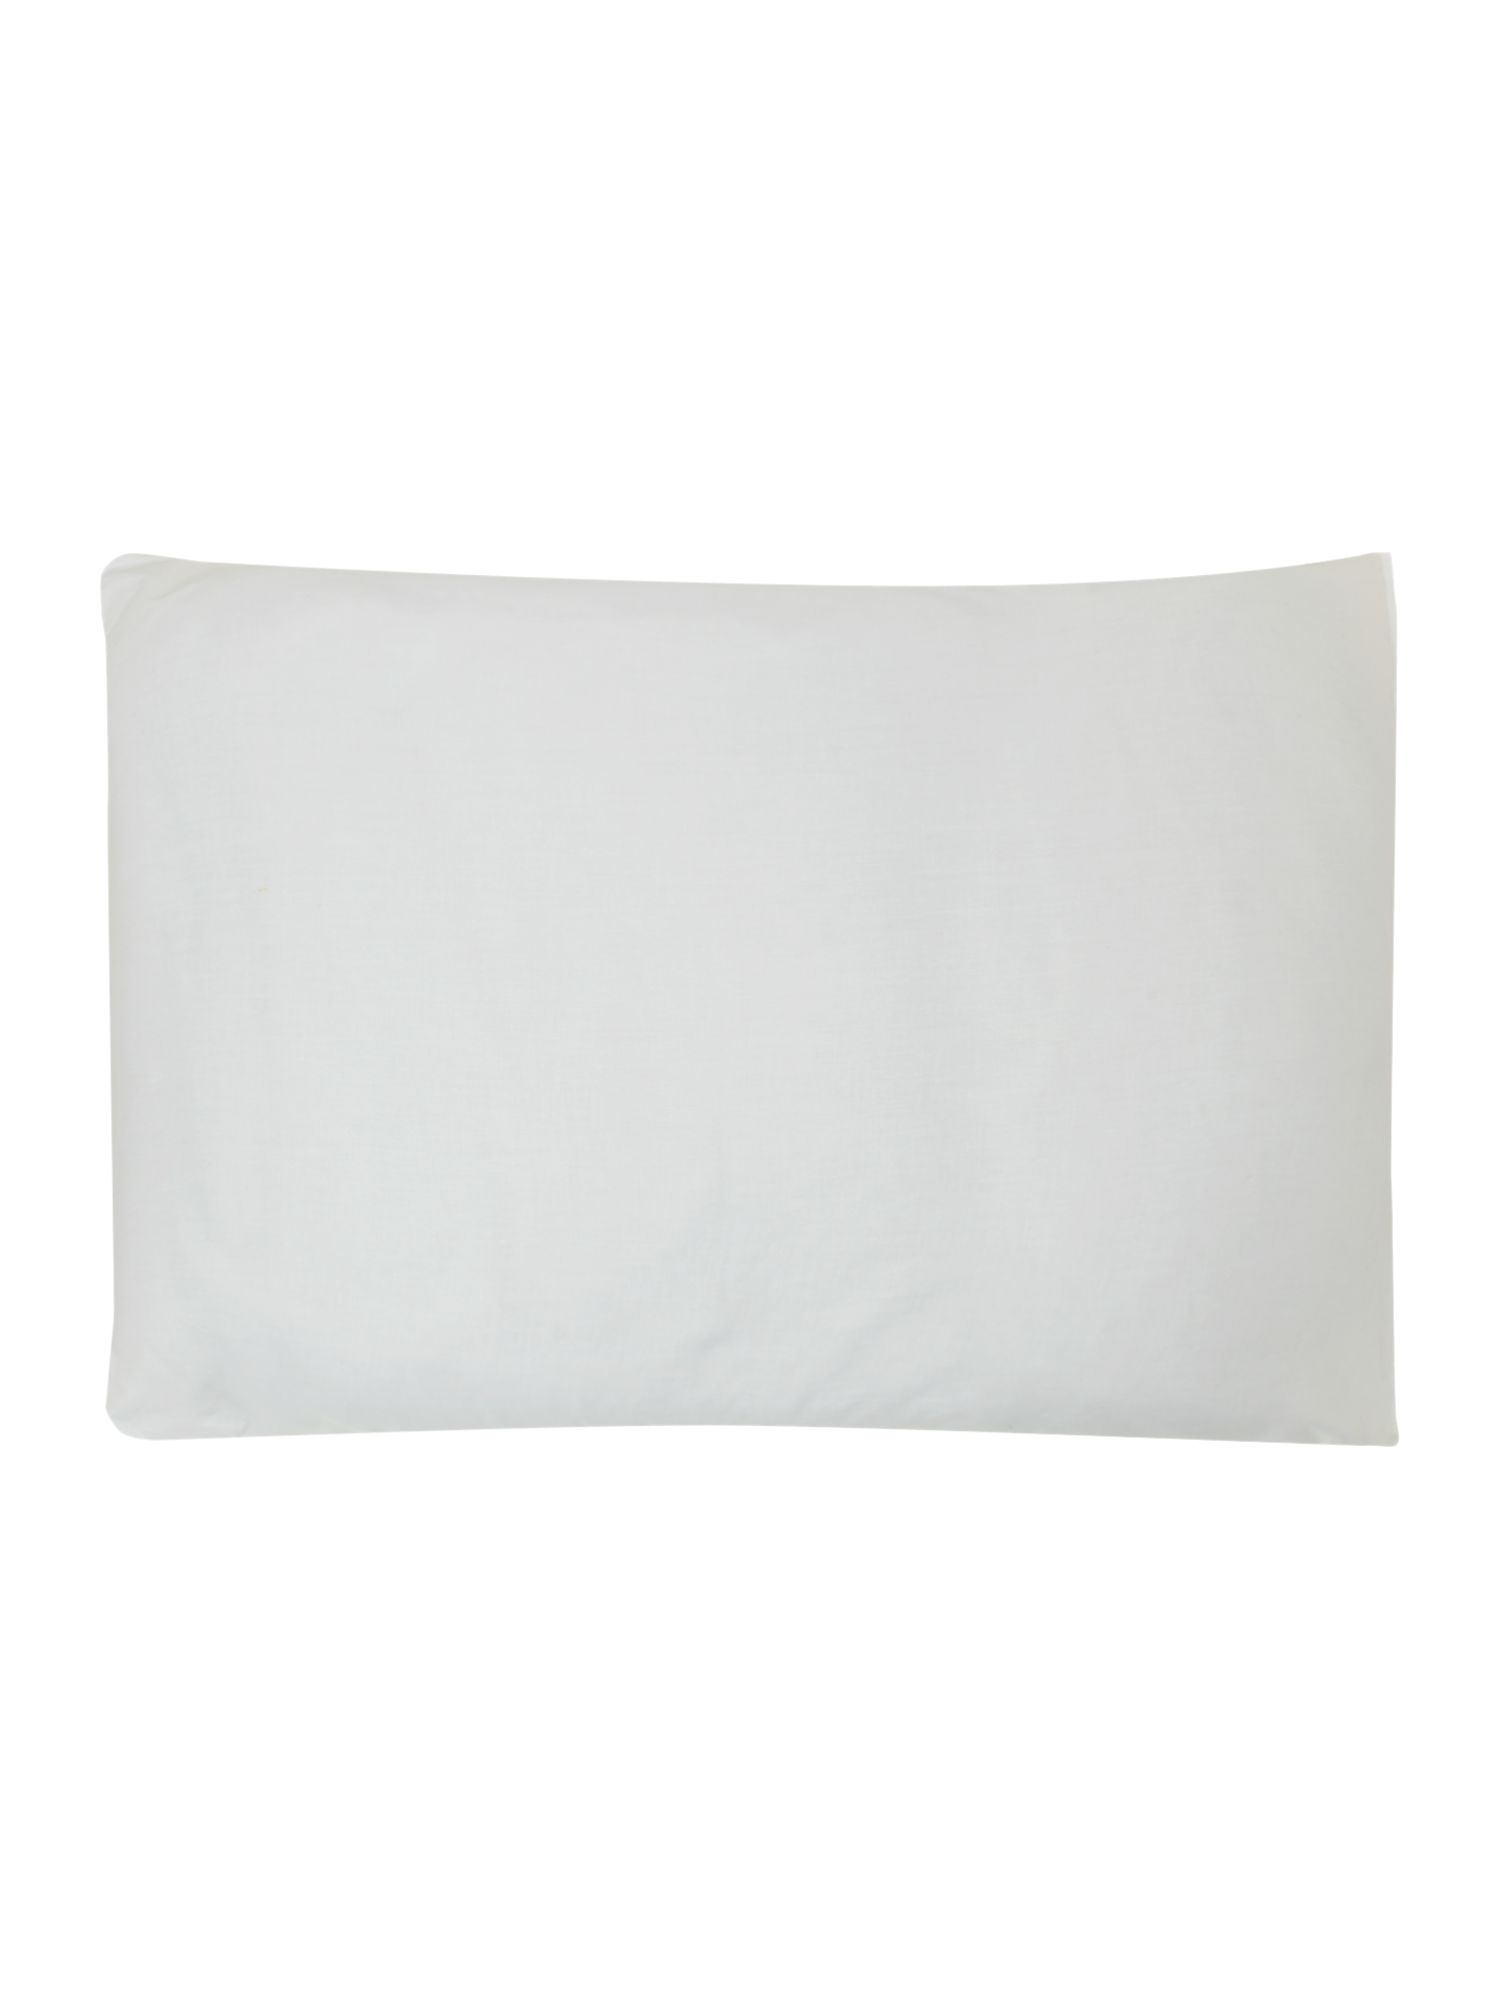 Orthopaedic pillow